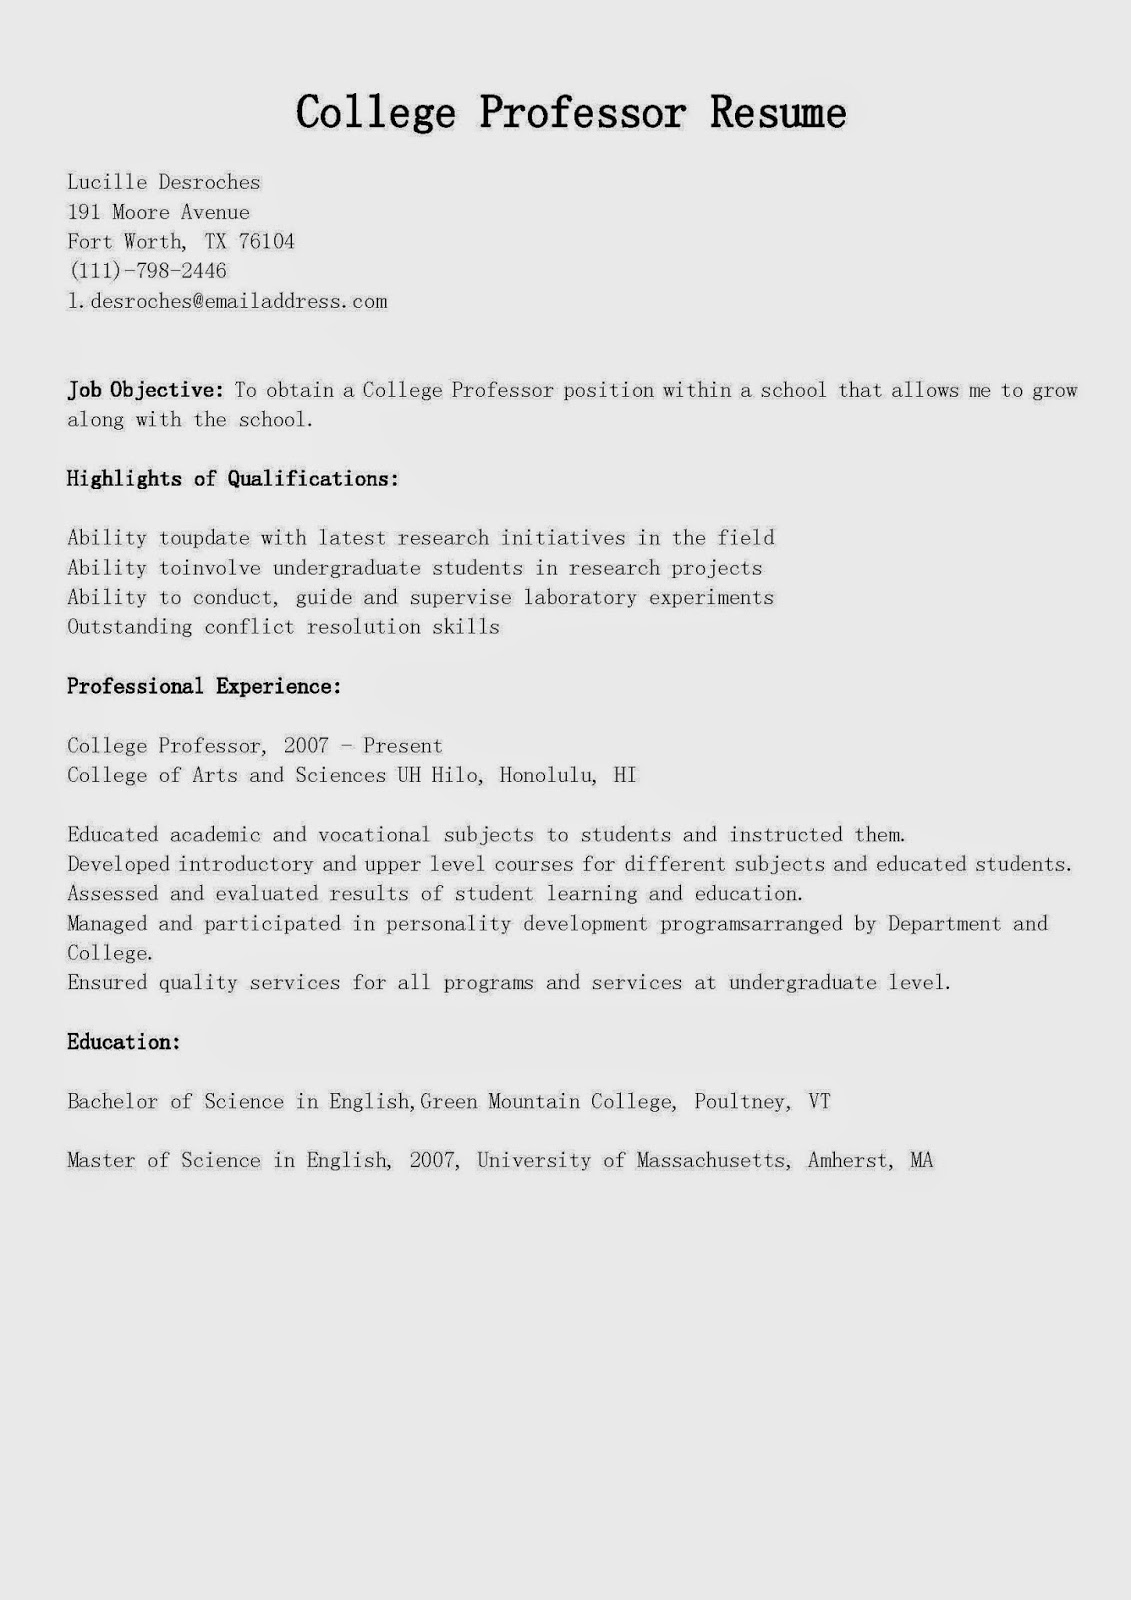 resume samples  college professor resume sample